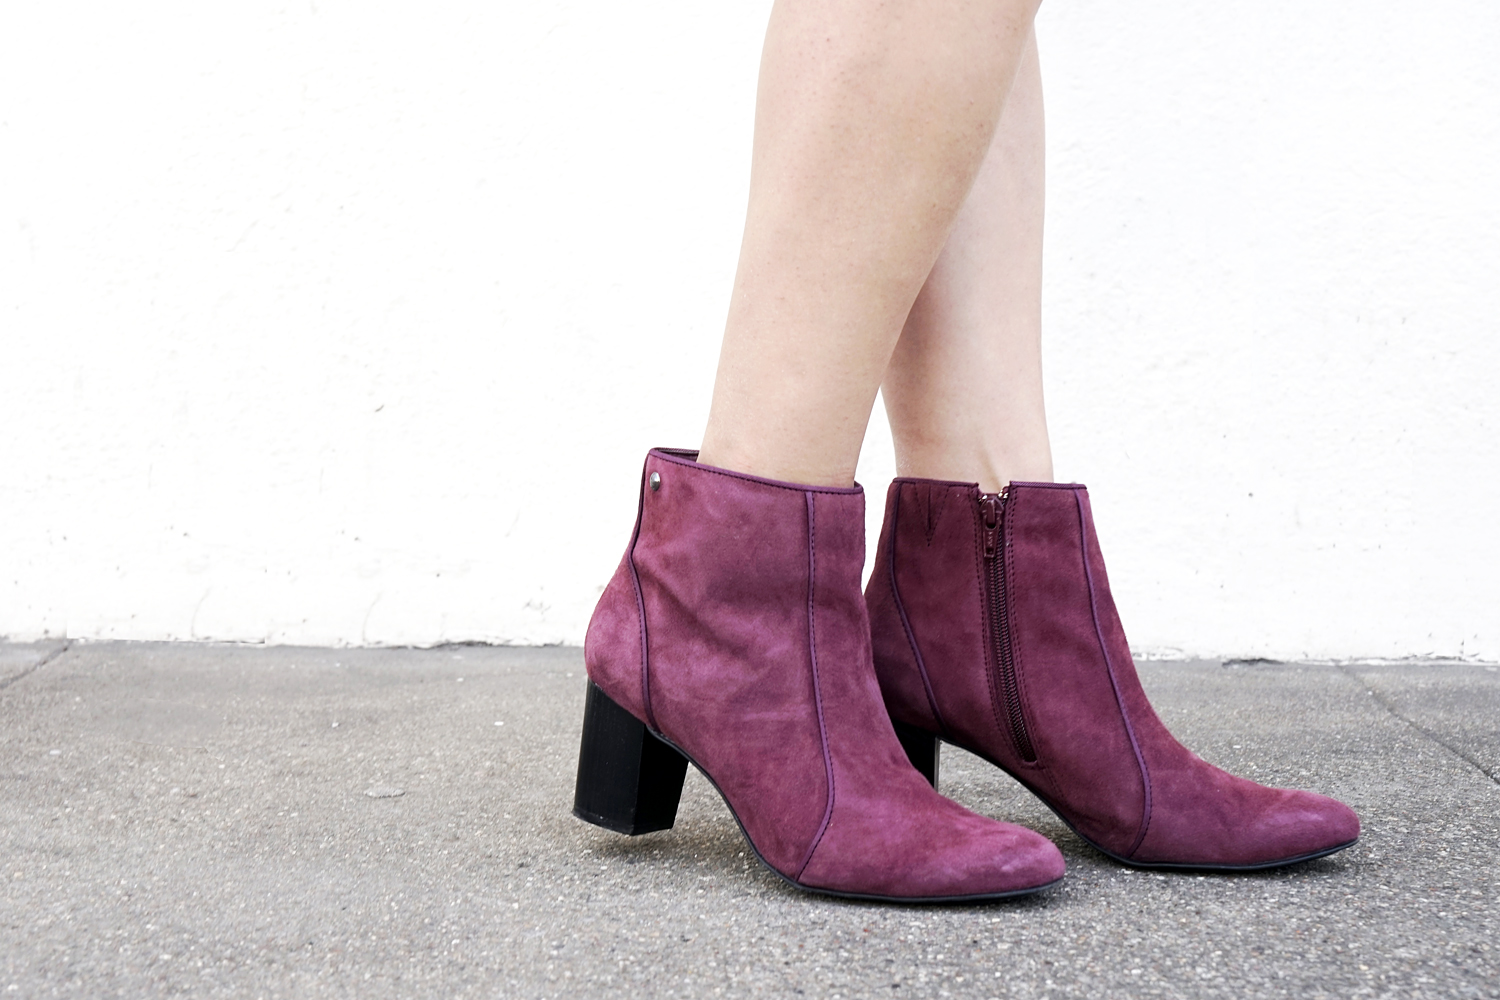 08hushpuppies-suede-boots-shoes-fall-fashion-style